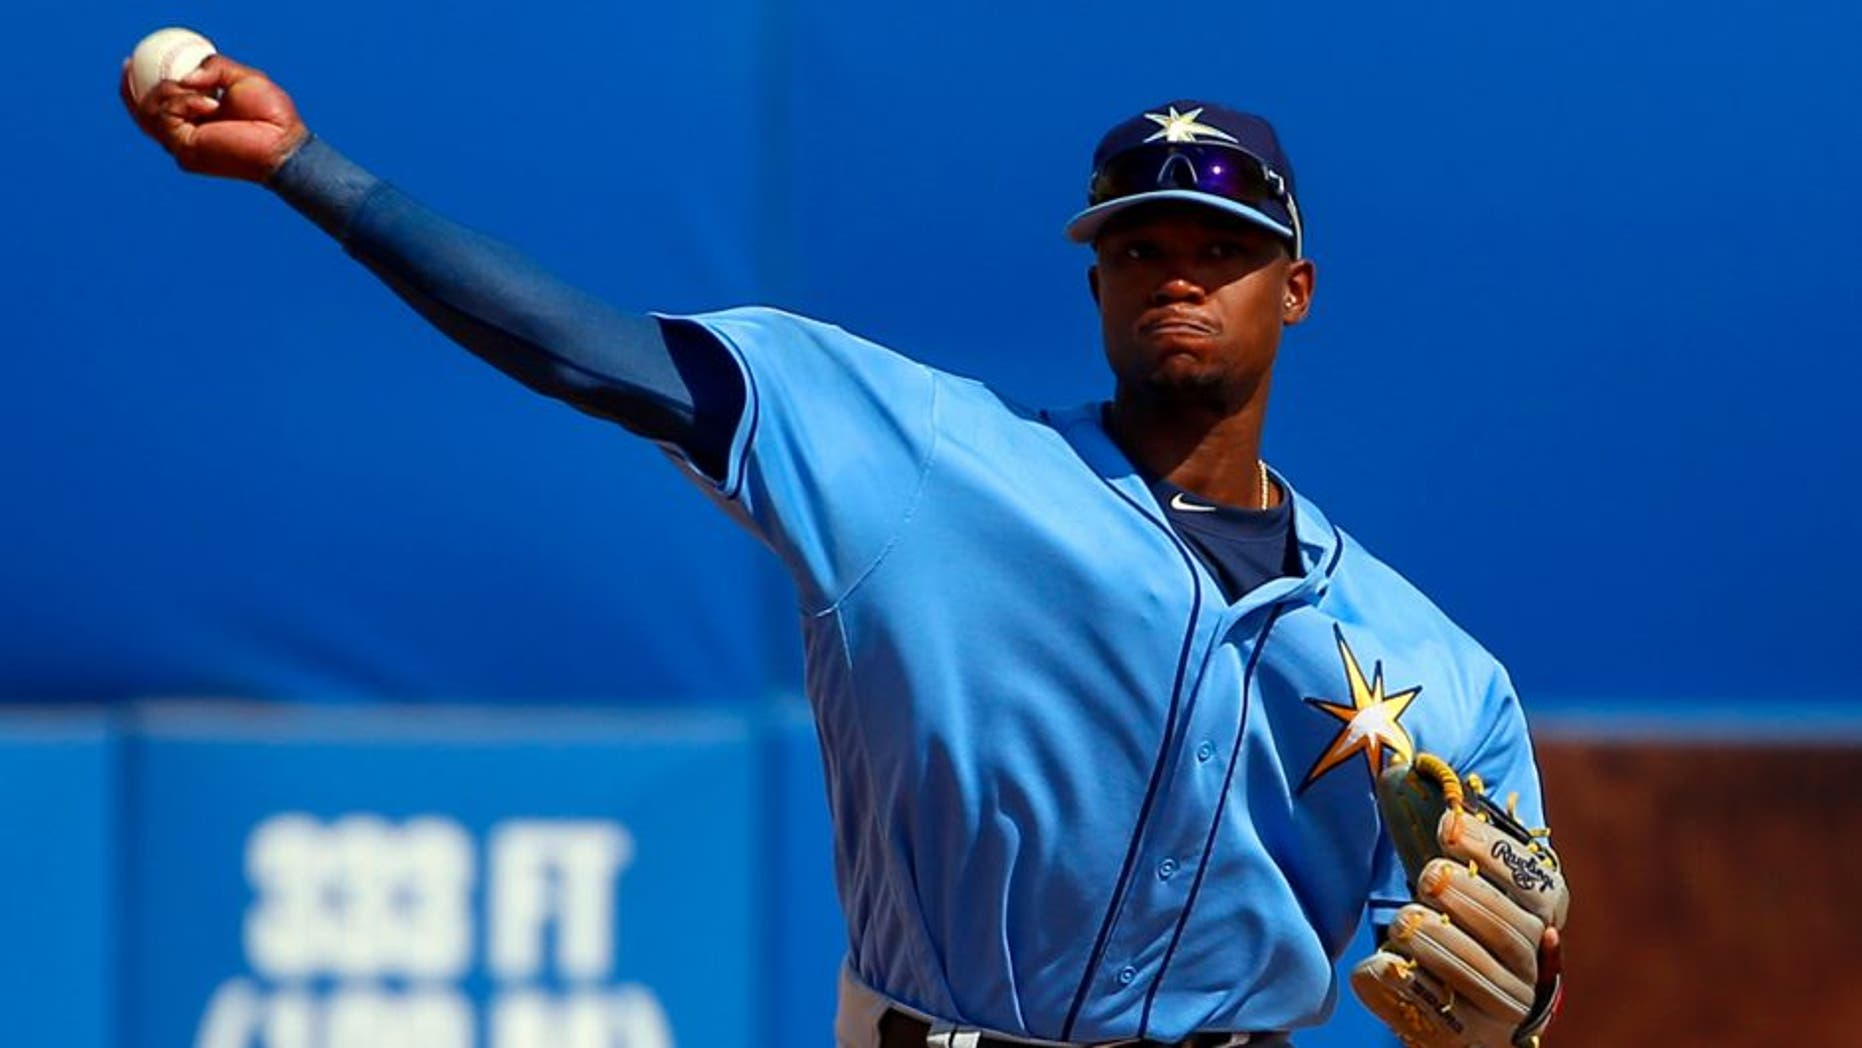 Mar 5, 2017; Dunedin, FL, USA; Tampa Bay Rays shortstop Tim Beckham (1) throws to first for the out in the fifth inning of a baseball game against the Toronto Blue Jays during spring training at Florida Auto Exchange Stadium. Mandatory Credit: Butch Dill-USA TODAY Sports